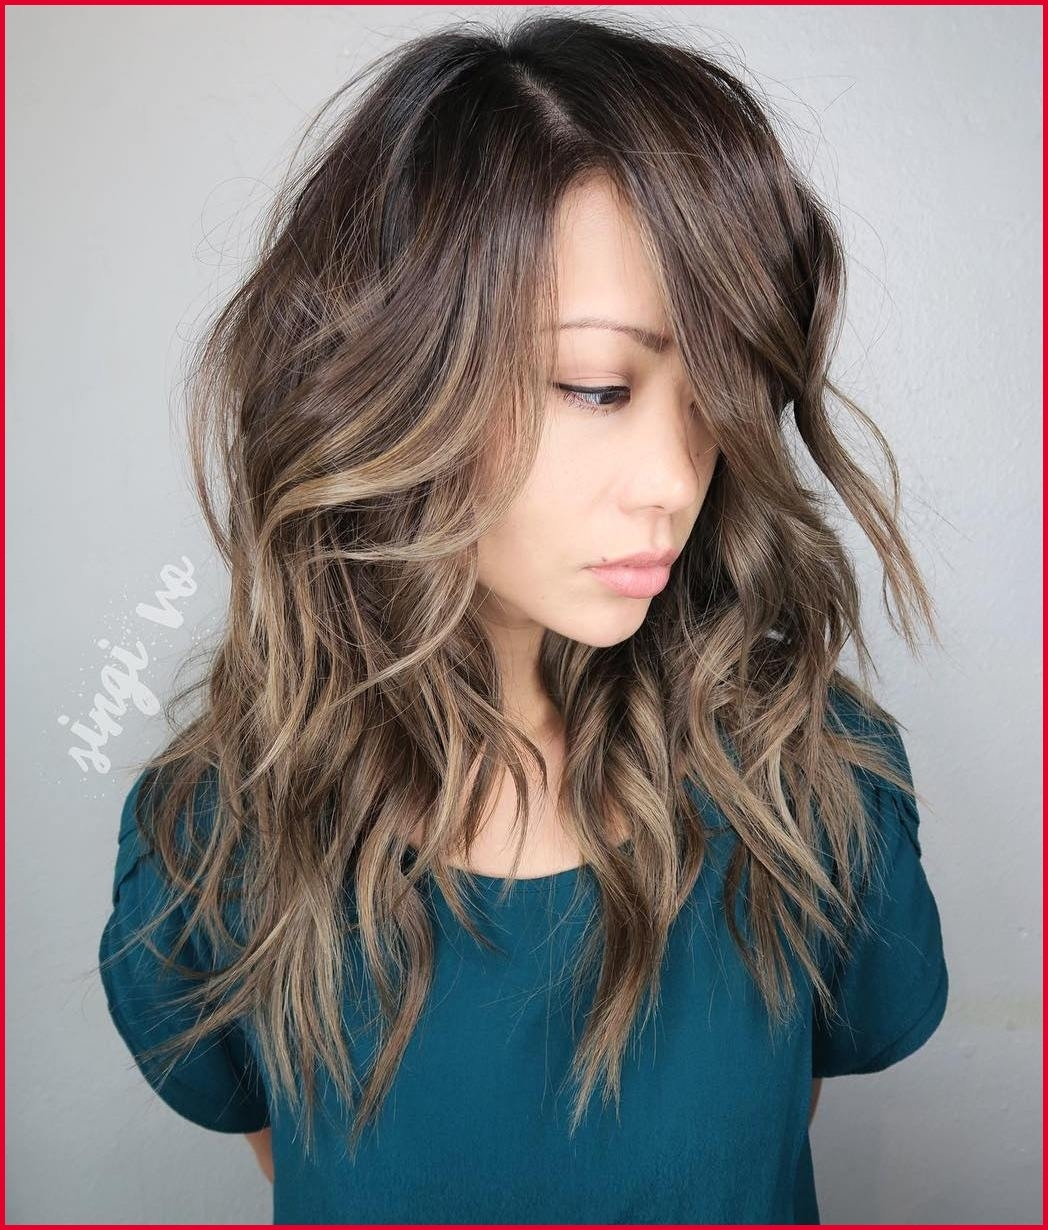 Haircuts For Oval Faces And Thick Hair 301464 60 Most Beneficial in Haircuts For Thick Hair Oblong Face